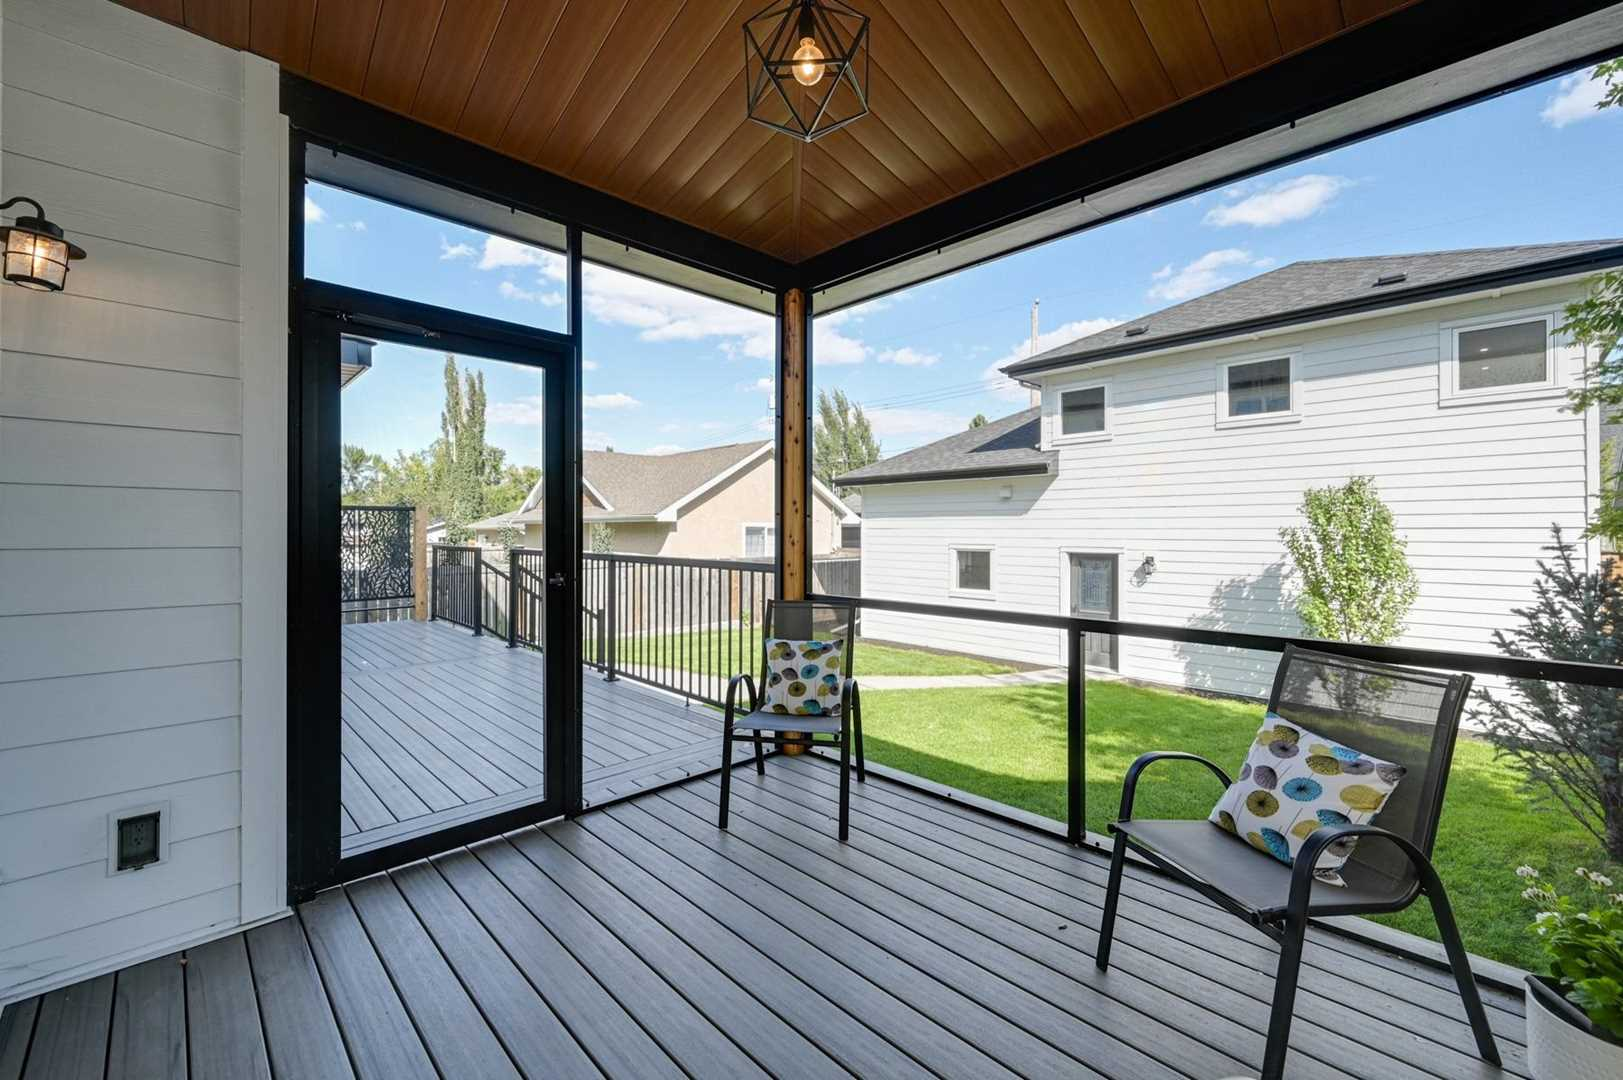 Screened-in backyard patio with door to the rest of the deck on left; two lawn chairs inside, single light above; view of one-and-a-half storey garage across green lawn